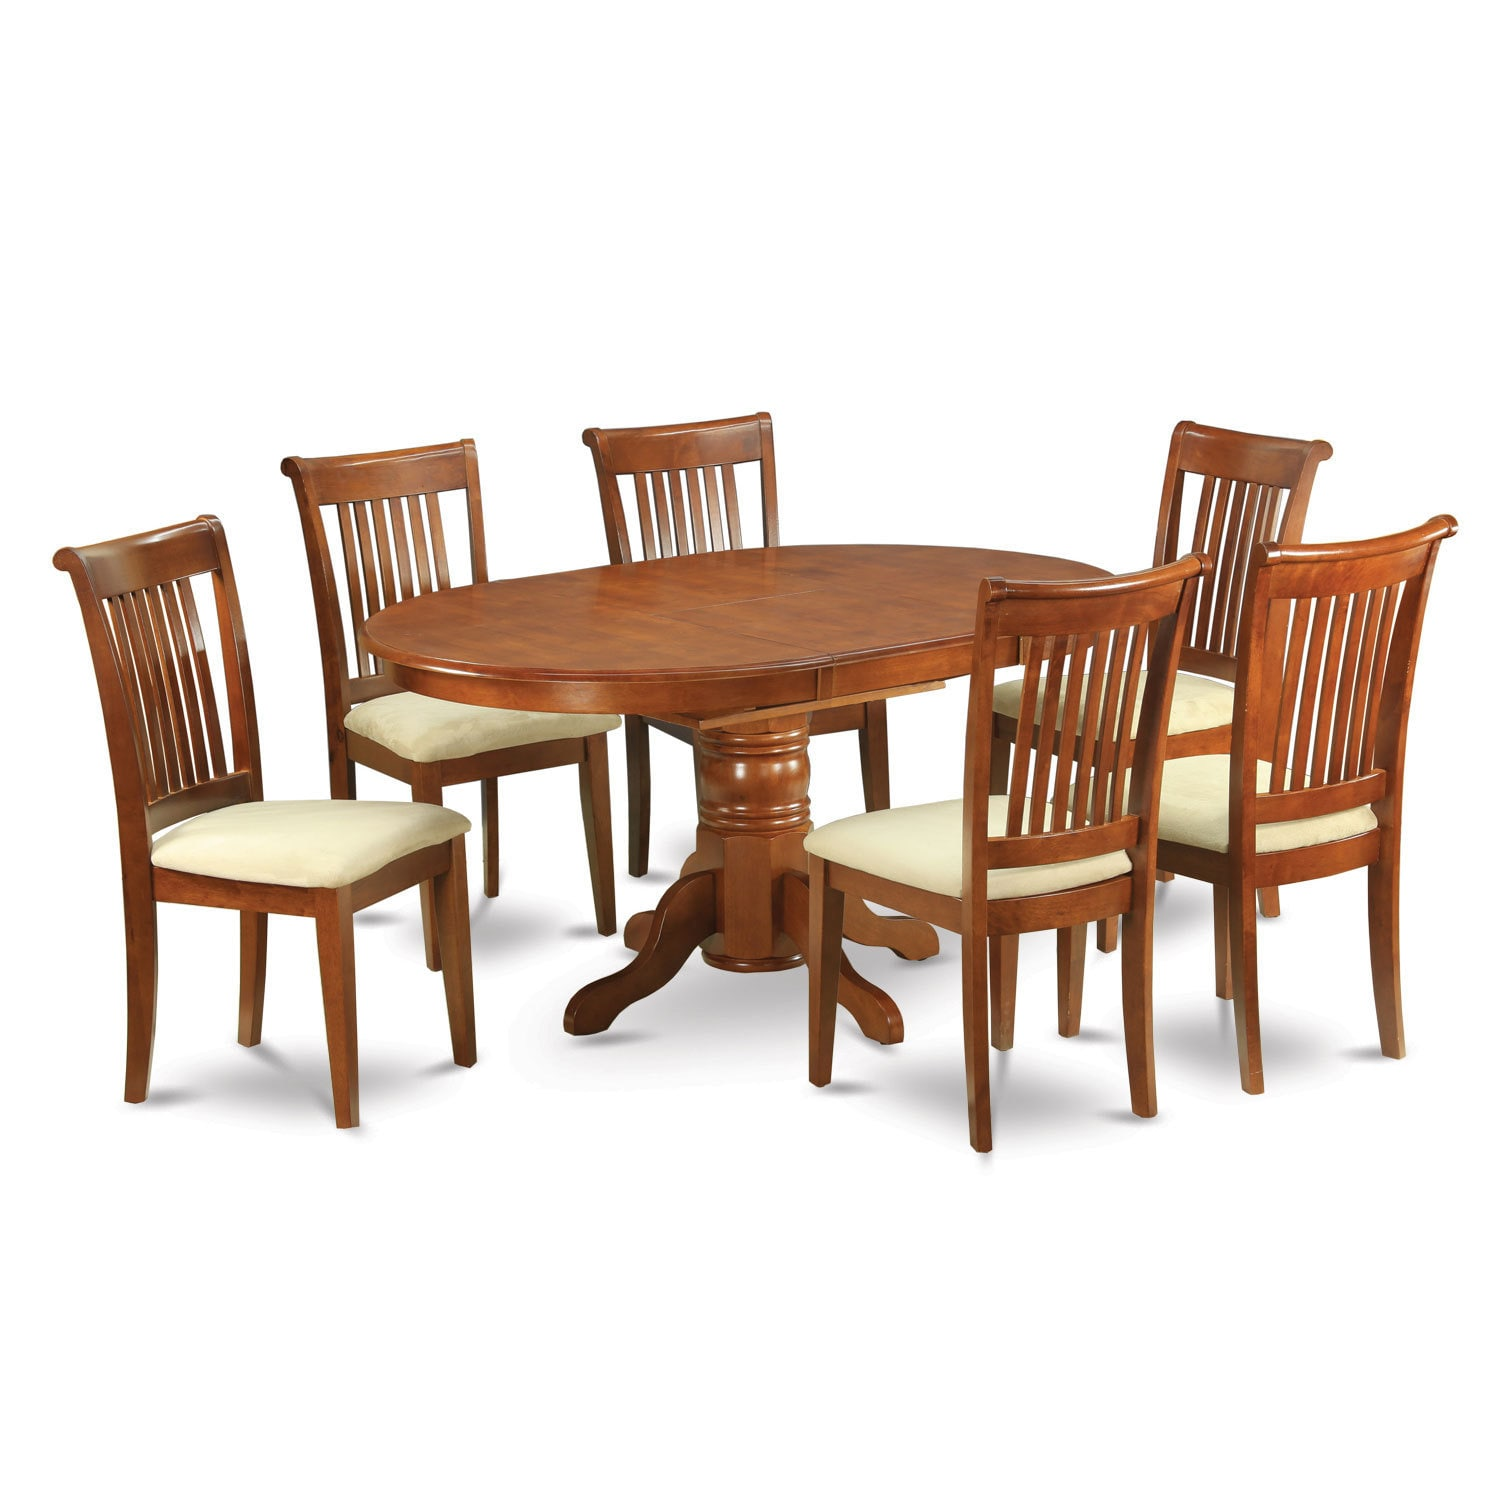 Oval Dining 5-piece Table and 4 Dining Chairs (Microfiber...